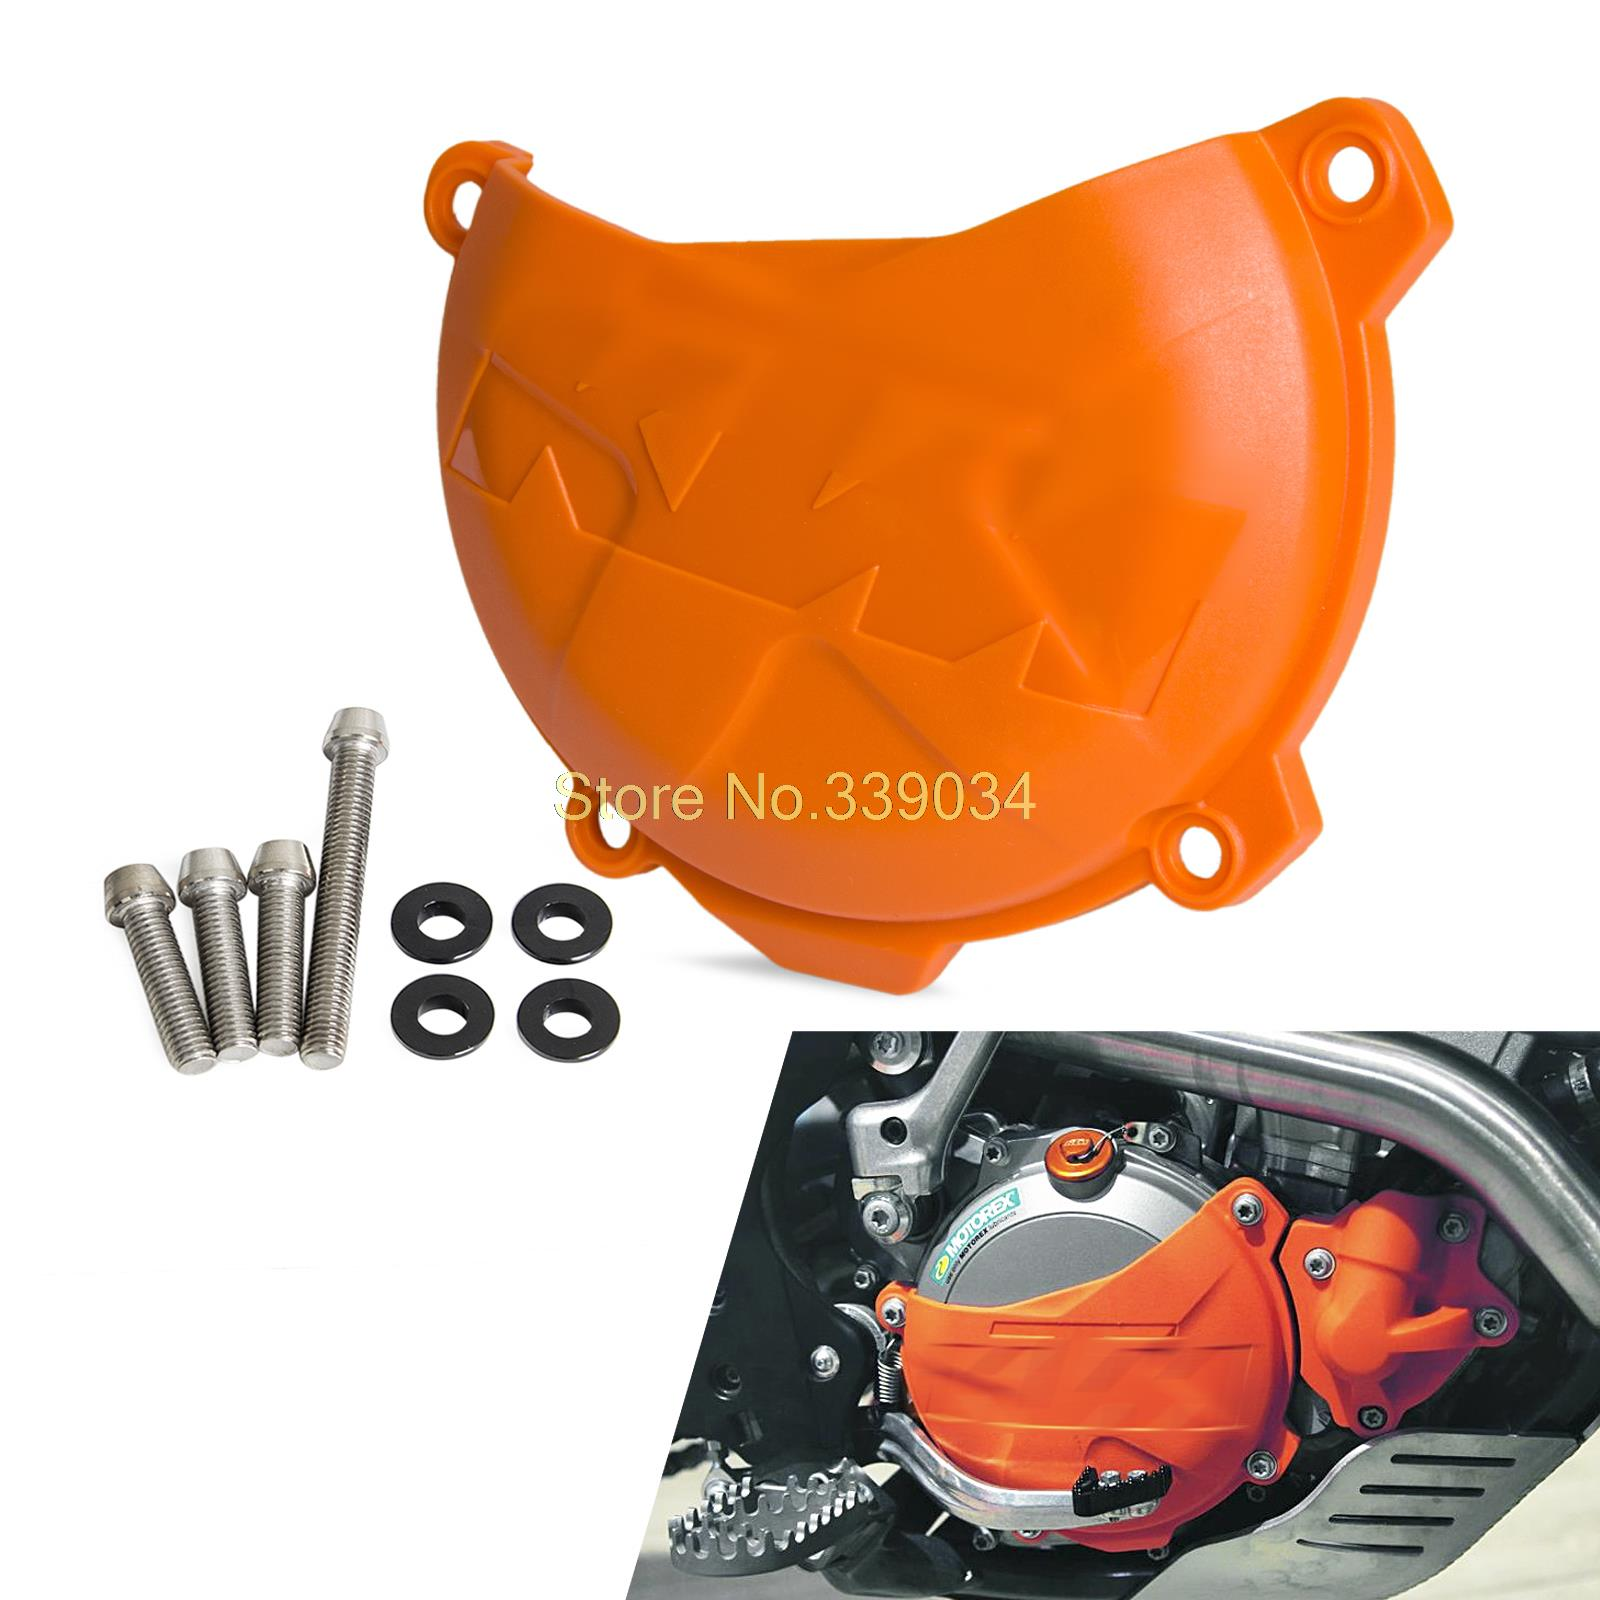 Clutch Cover Protection Cover Fits KTM 250 SX-F 250 XC-F 350 XC-F 2013 2014 2015 clutch cover protection cover for ktm 250 sx f 250 xc f 350 xc f 2013 2014 2015